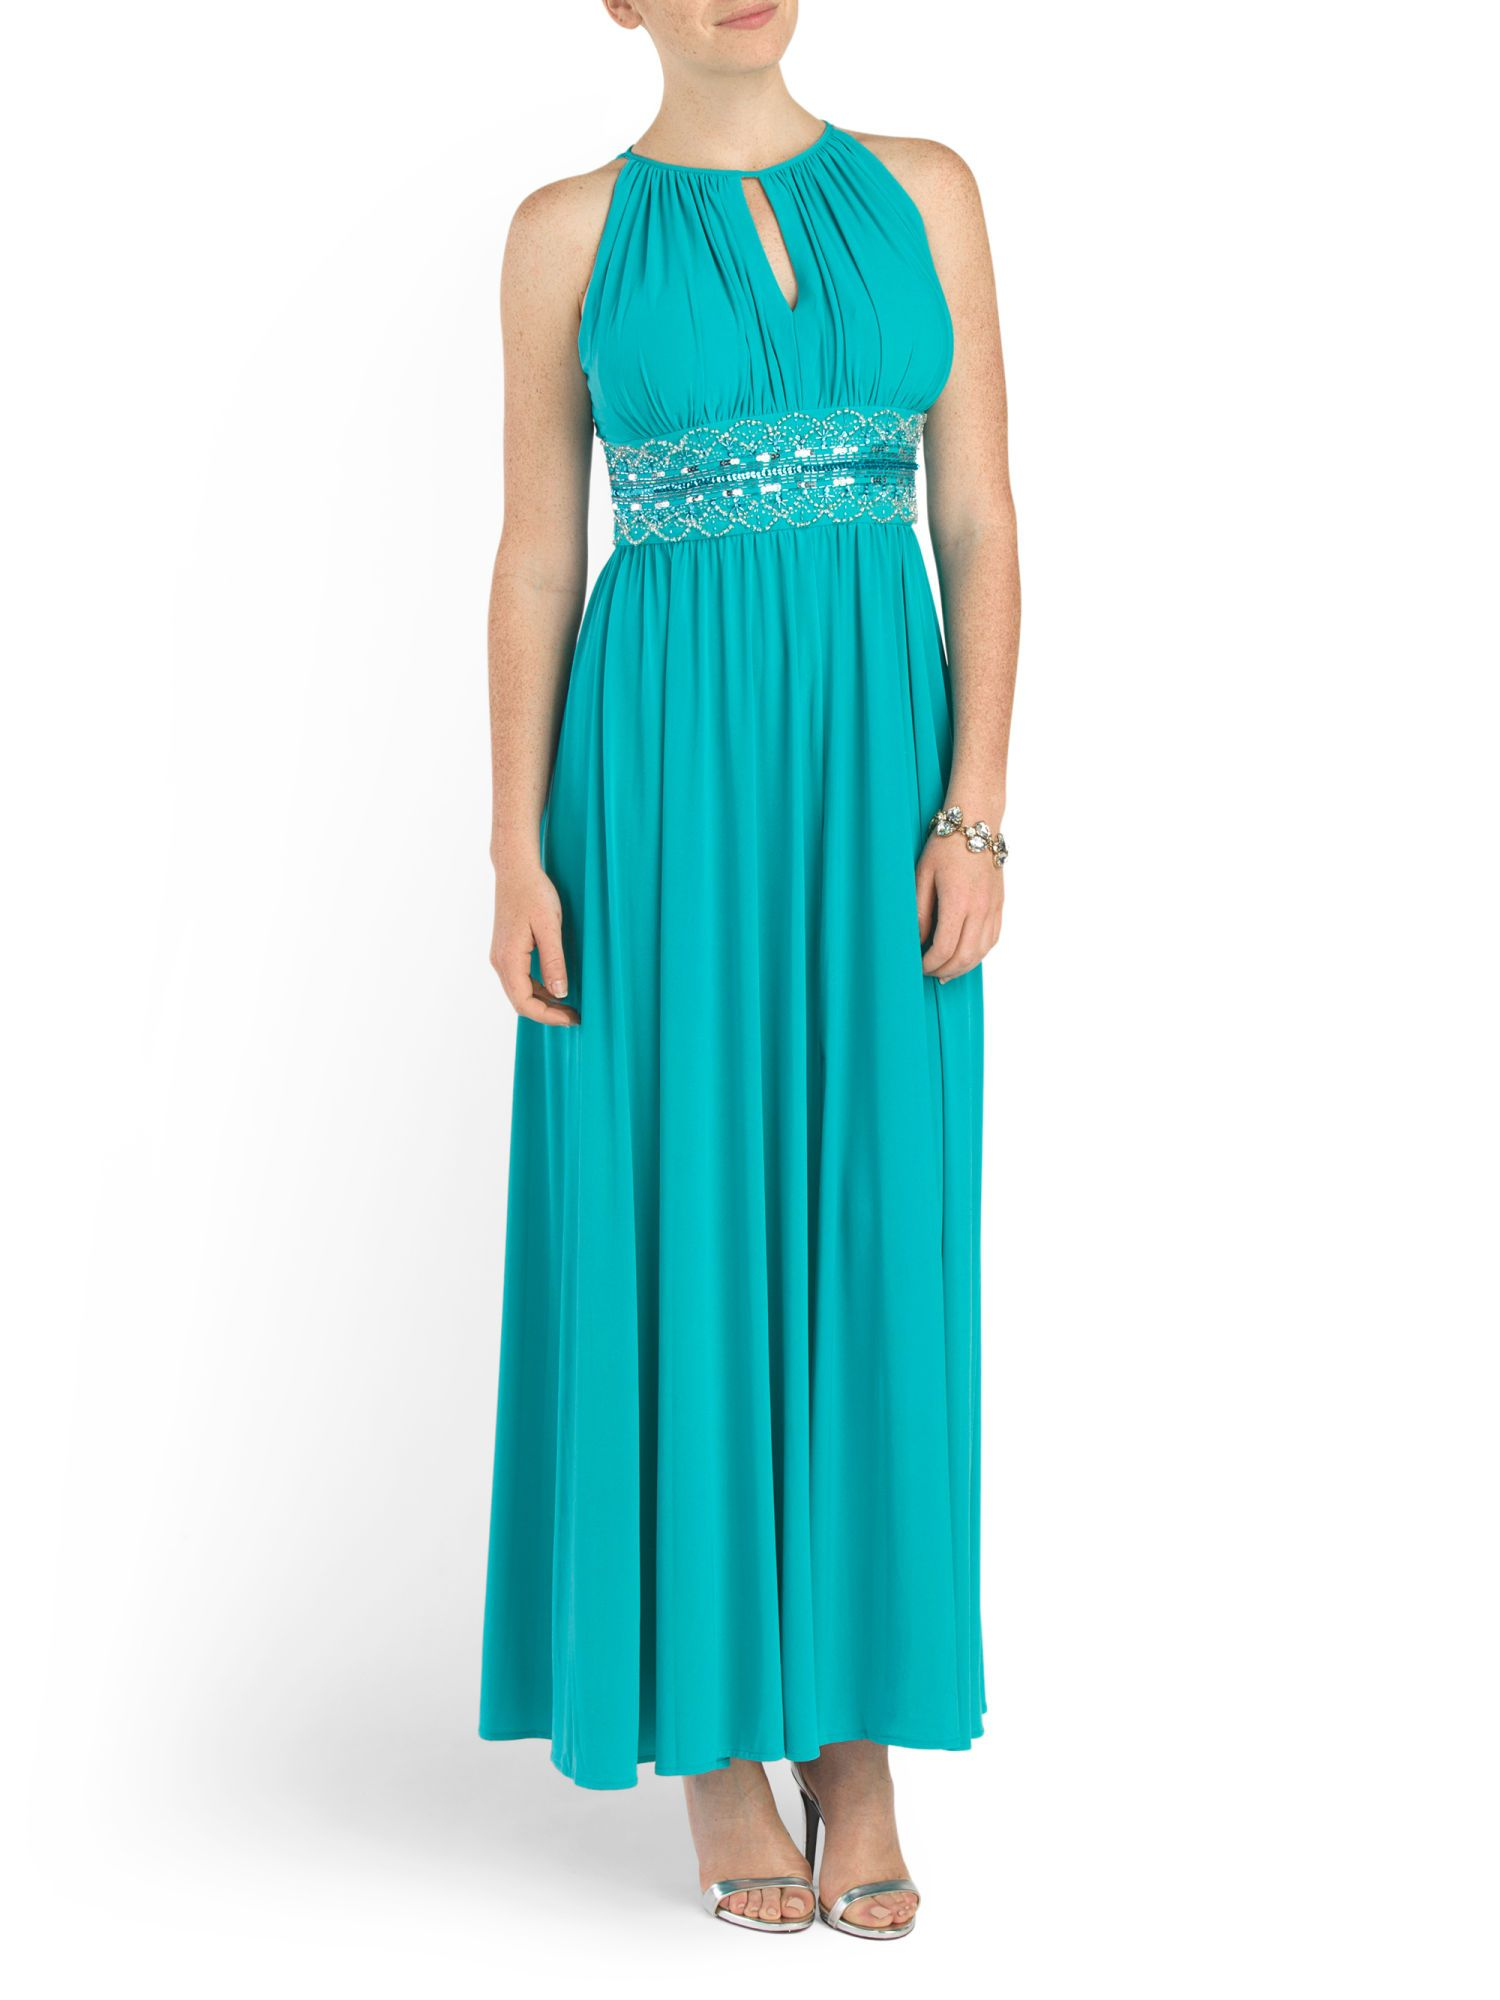 More Tj Maxx Online Formalsemi Formal Dresses For Janice